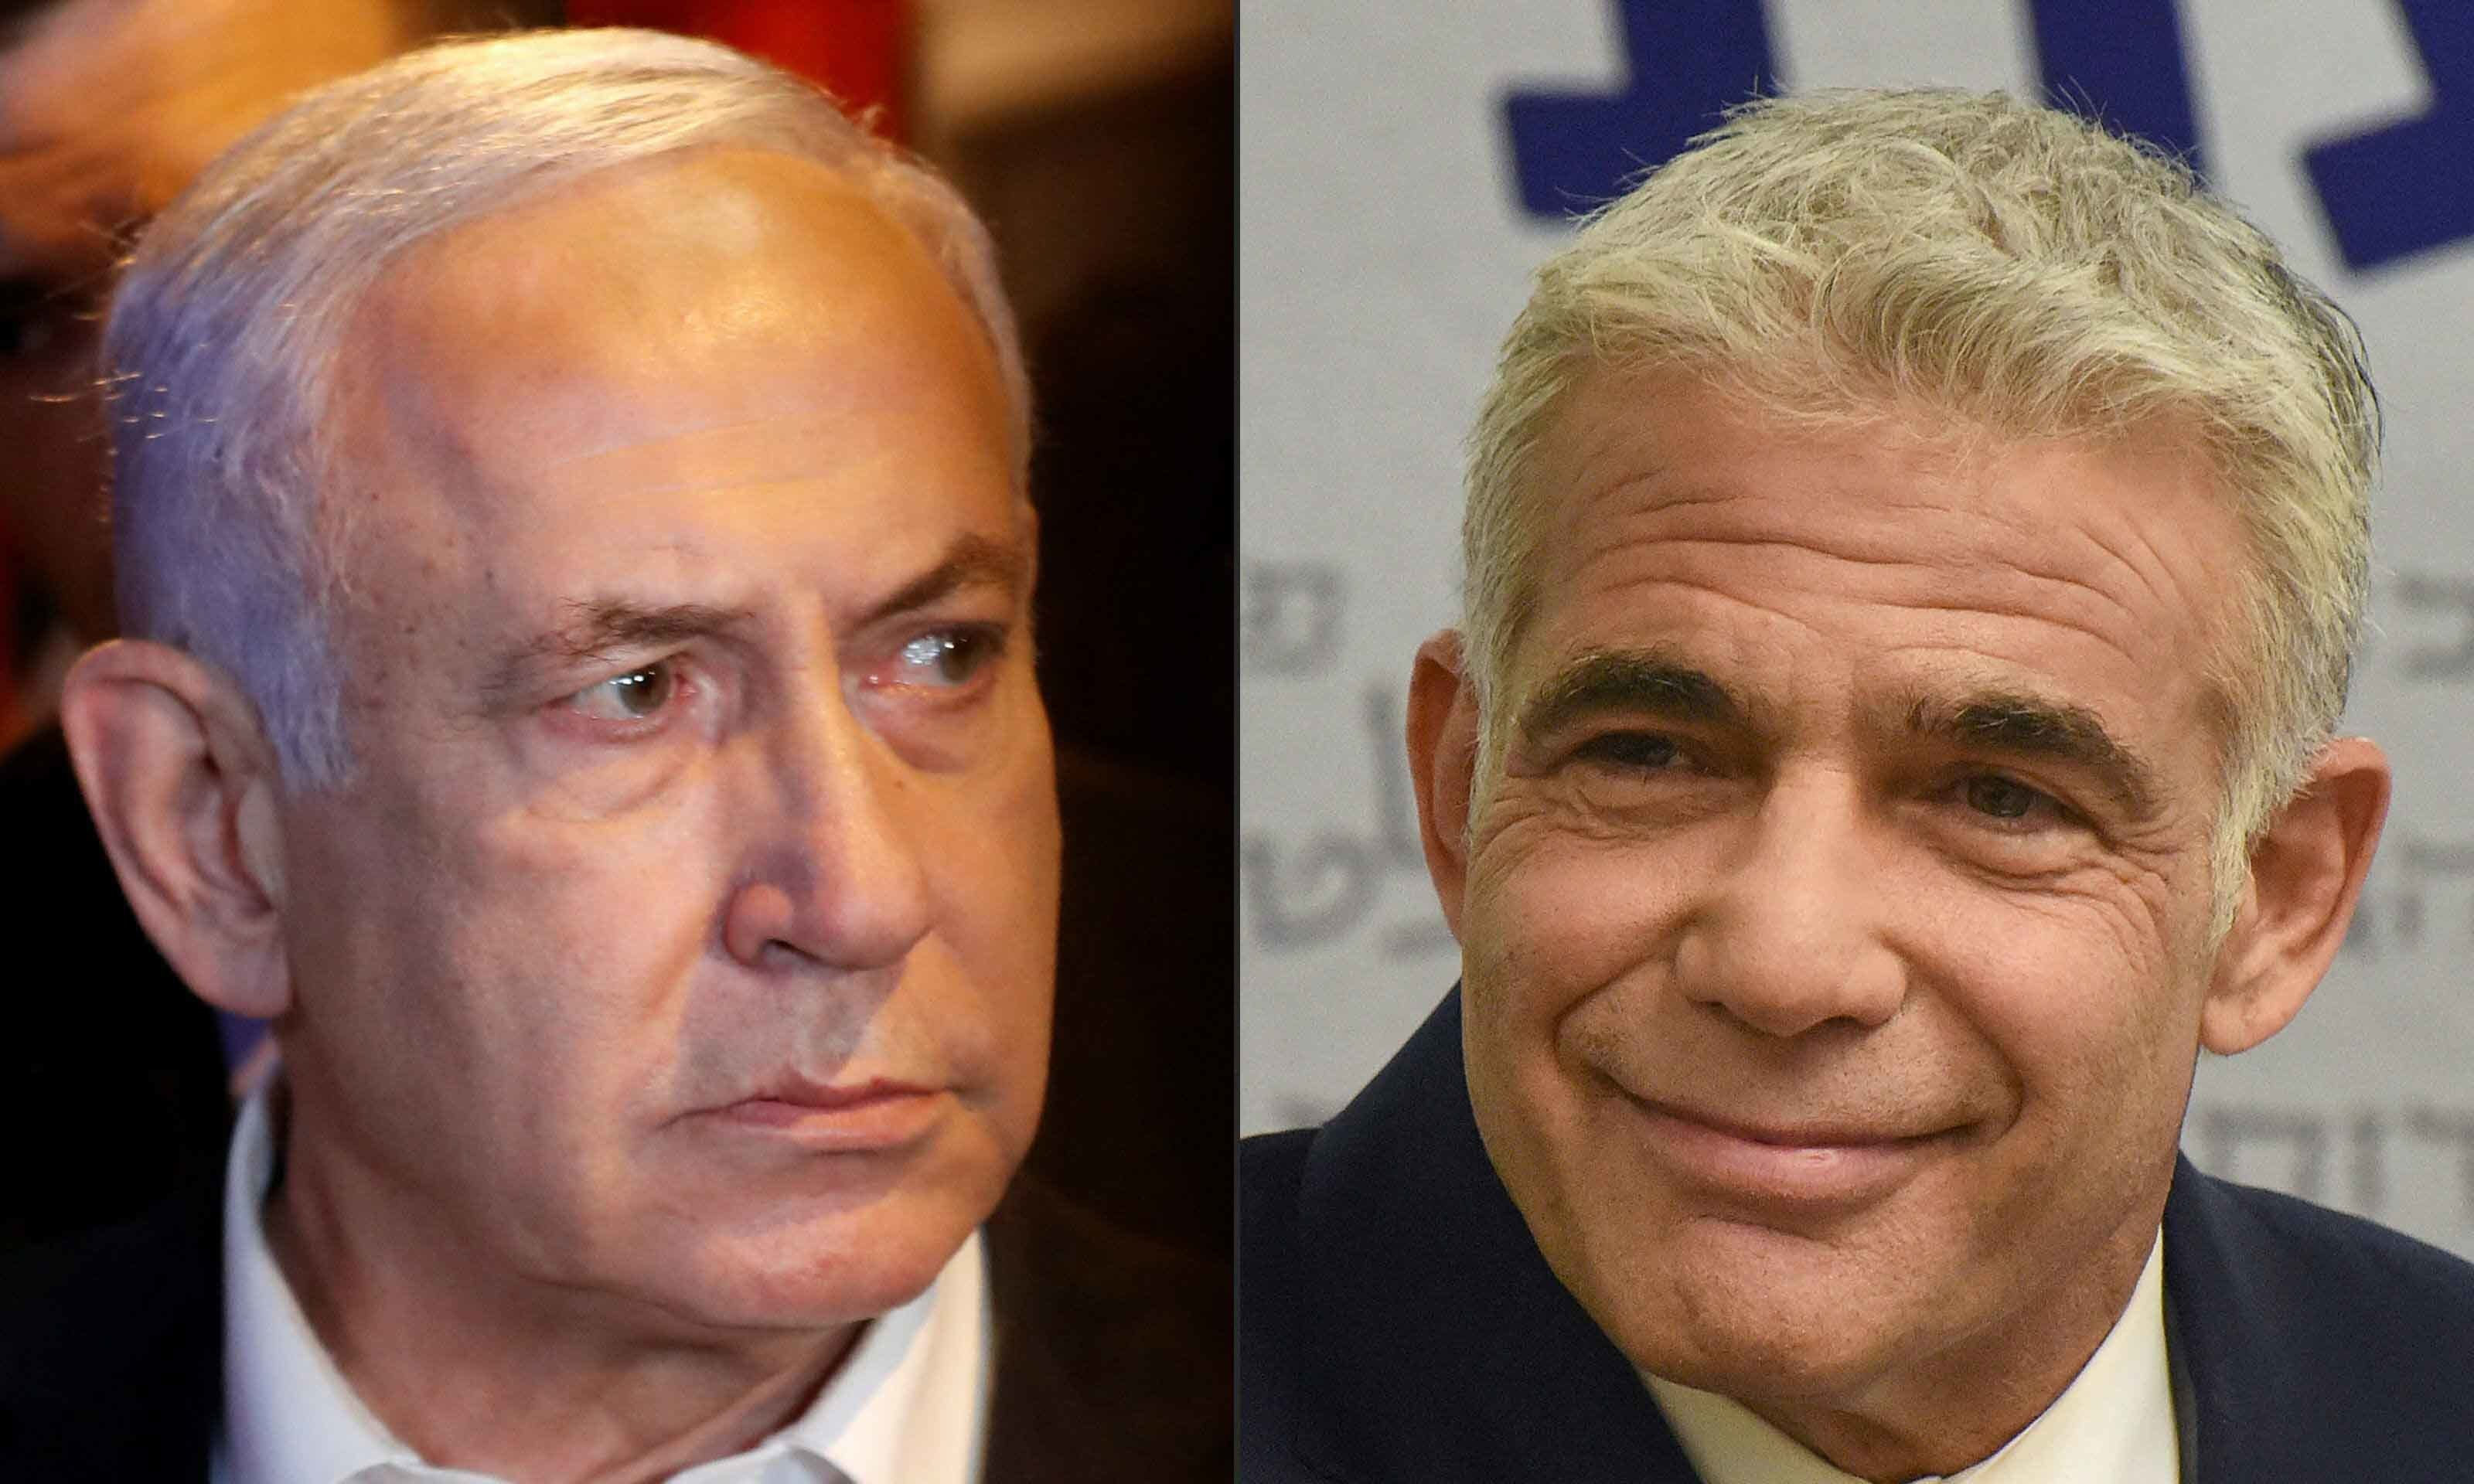 This combination of pictures shows Israeli Prime Minister Benjamin Netanyahu (left) and Israel's centrist opposition leader Yair Lapid. — AFP